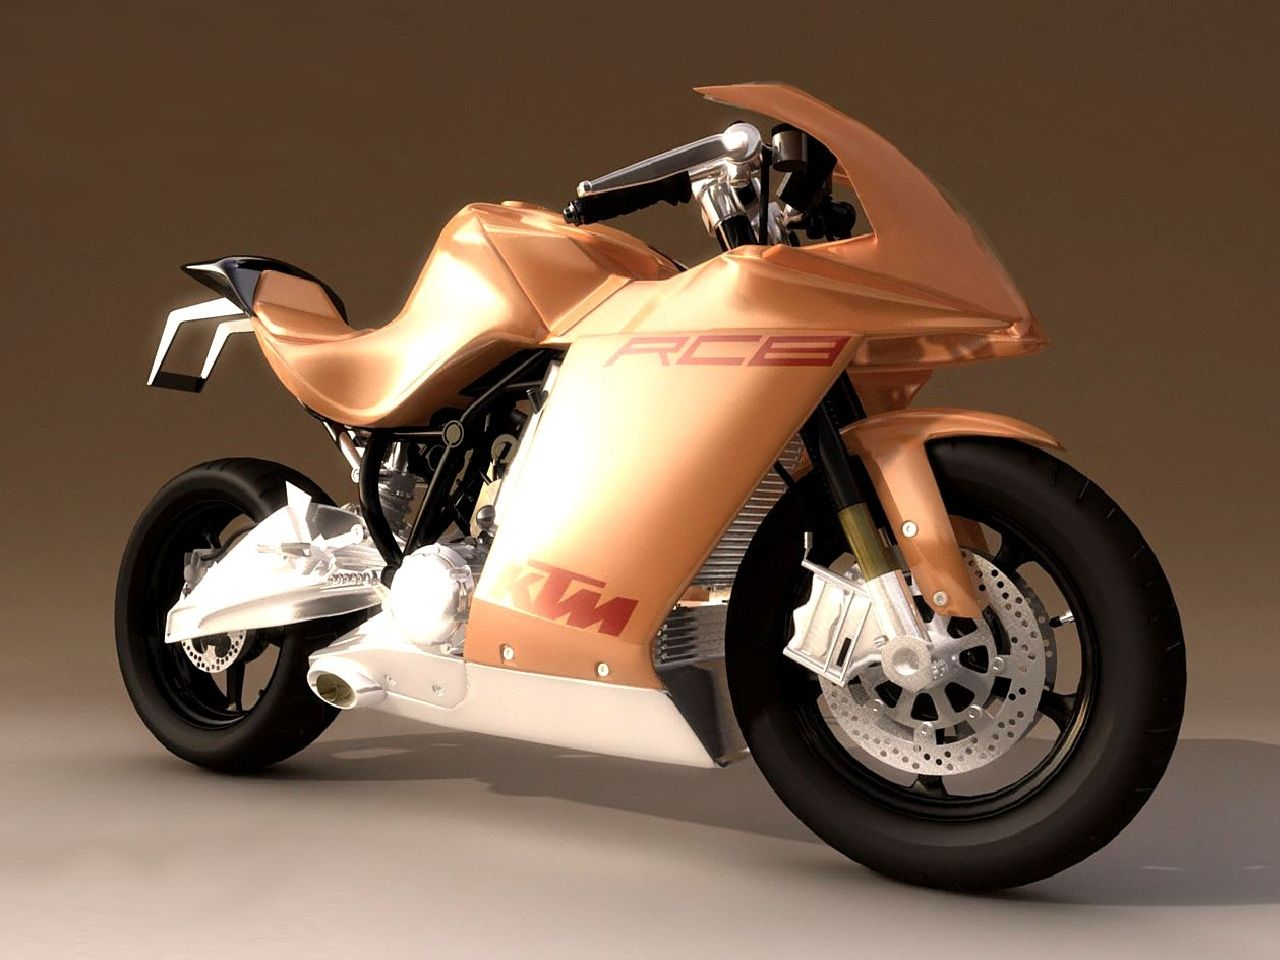 Pin By Hd Wallpapers On Bike Cars Wallpapers Pinterest